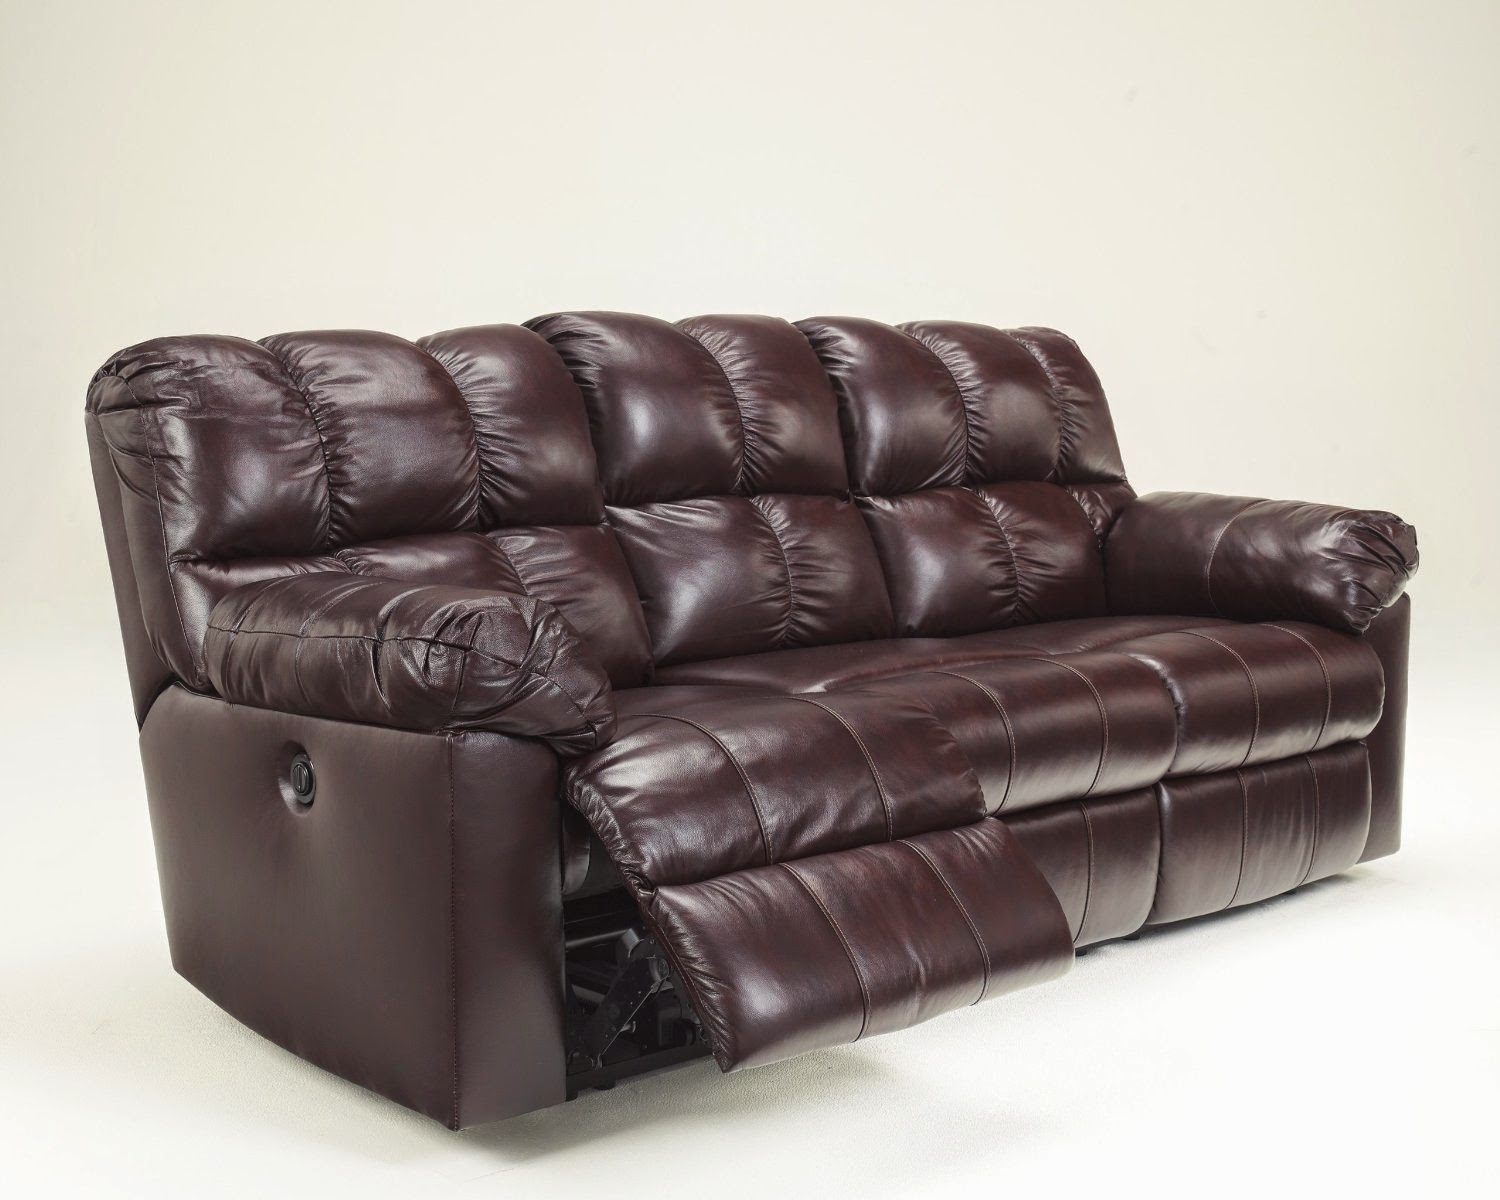 Reclining sofas for sale cheap red leather reclining sofa Leather reclining loveseat